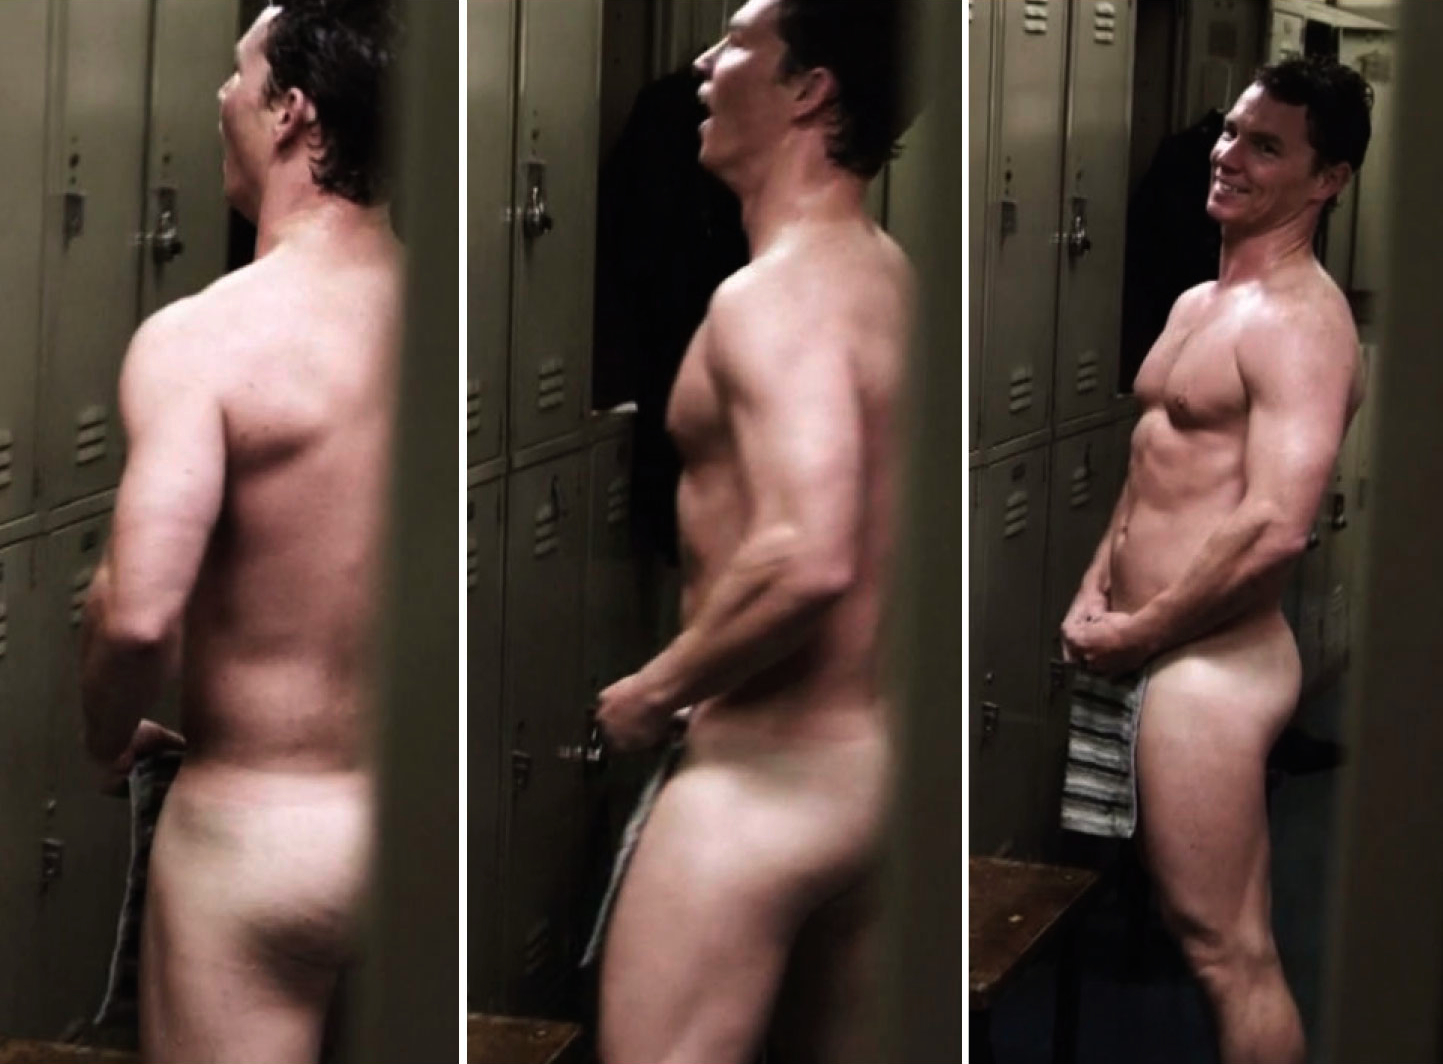 Topless Shawn Hatosy Naked Gif